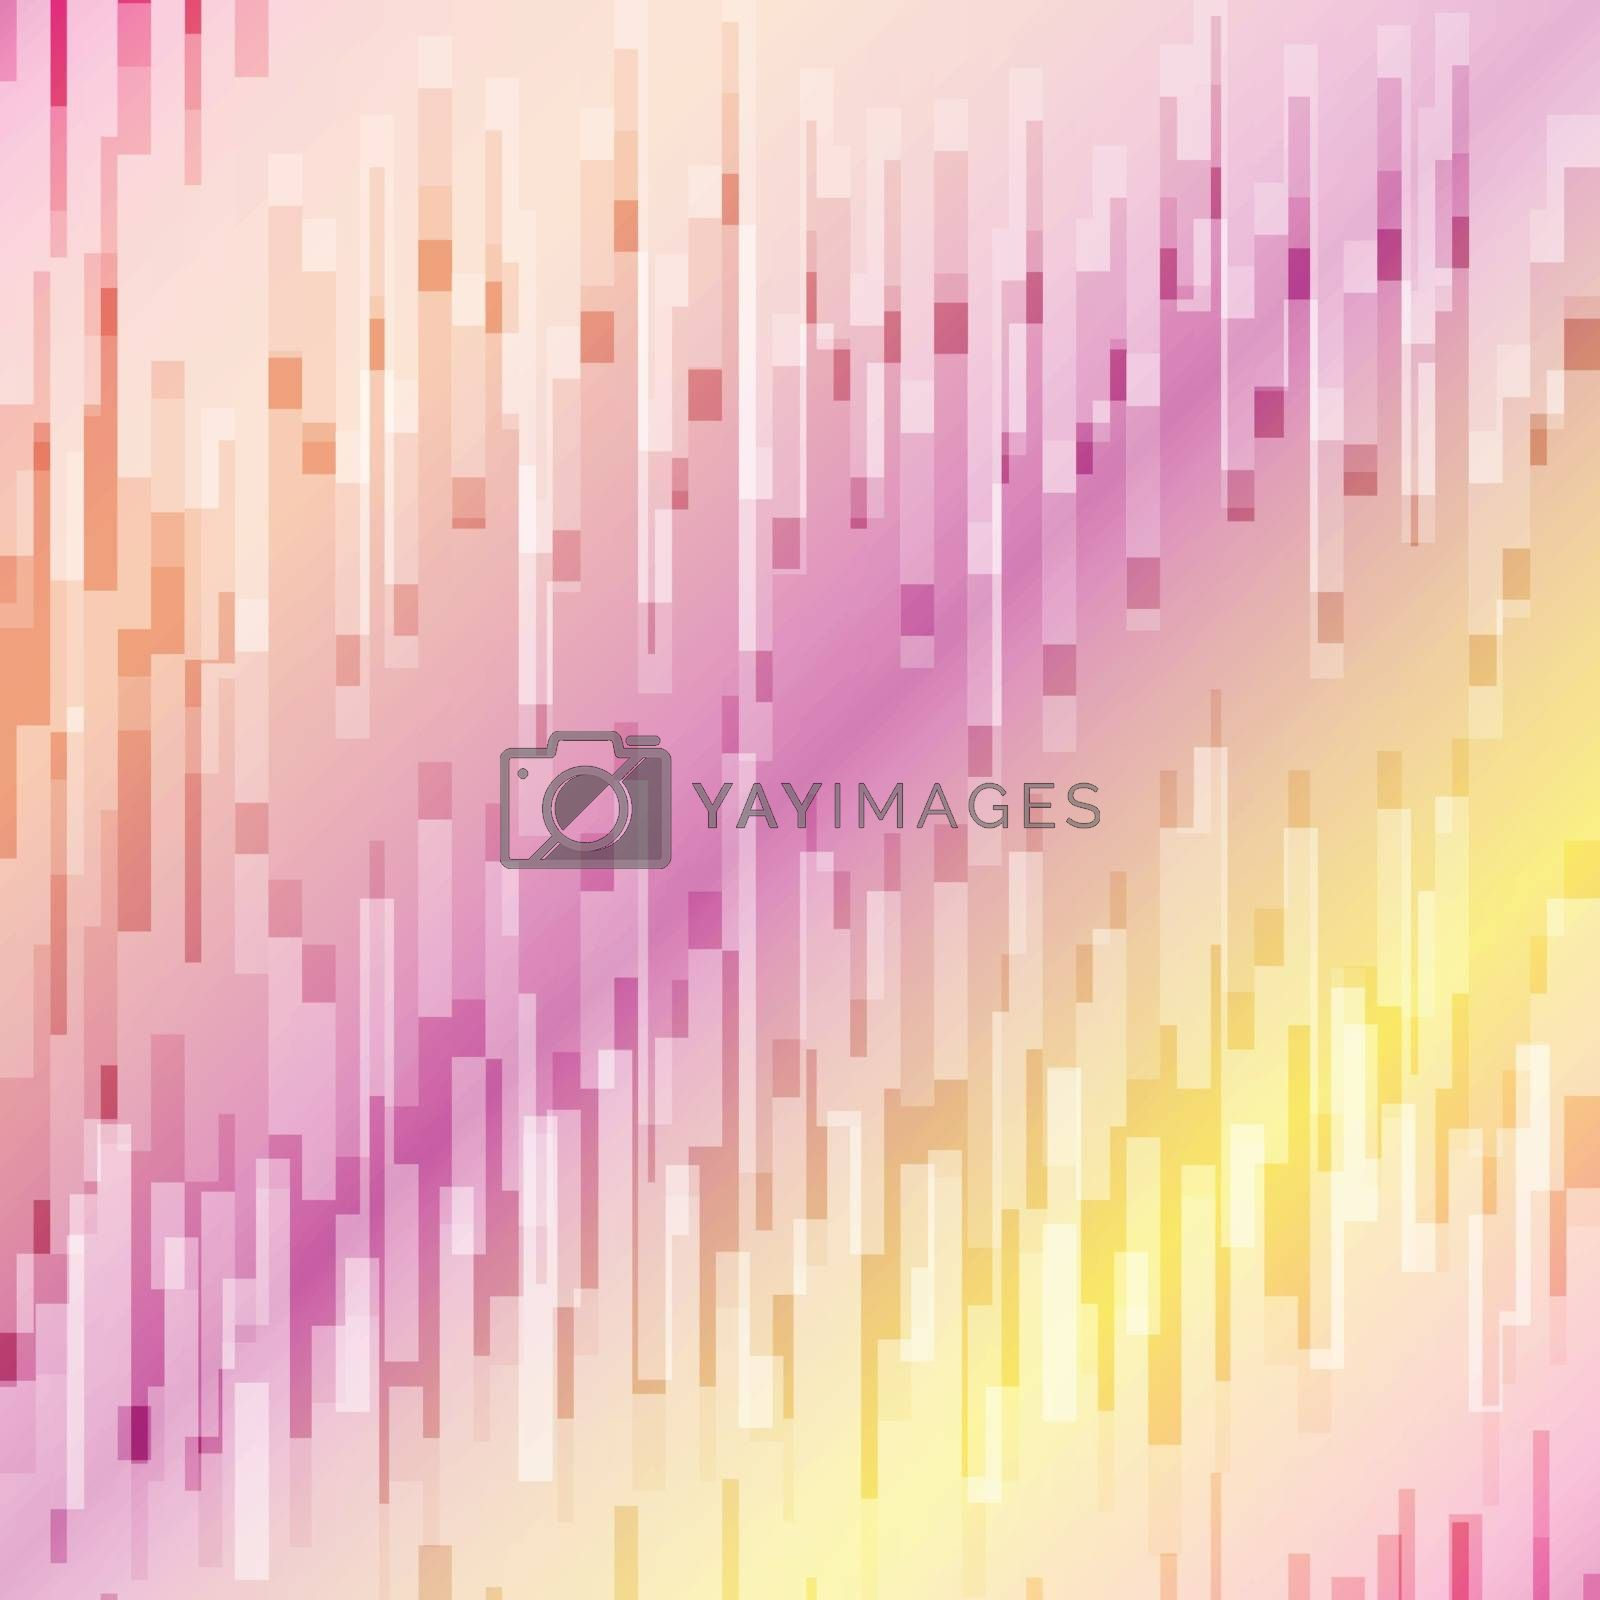 Abstract geometric vertical lines overlay on colorful background by phochi